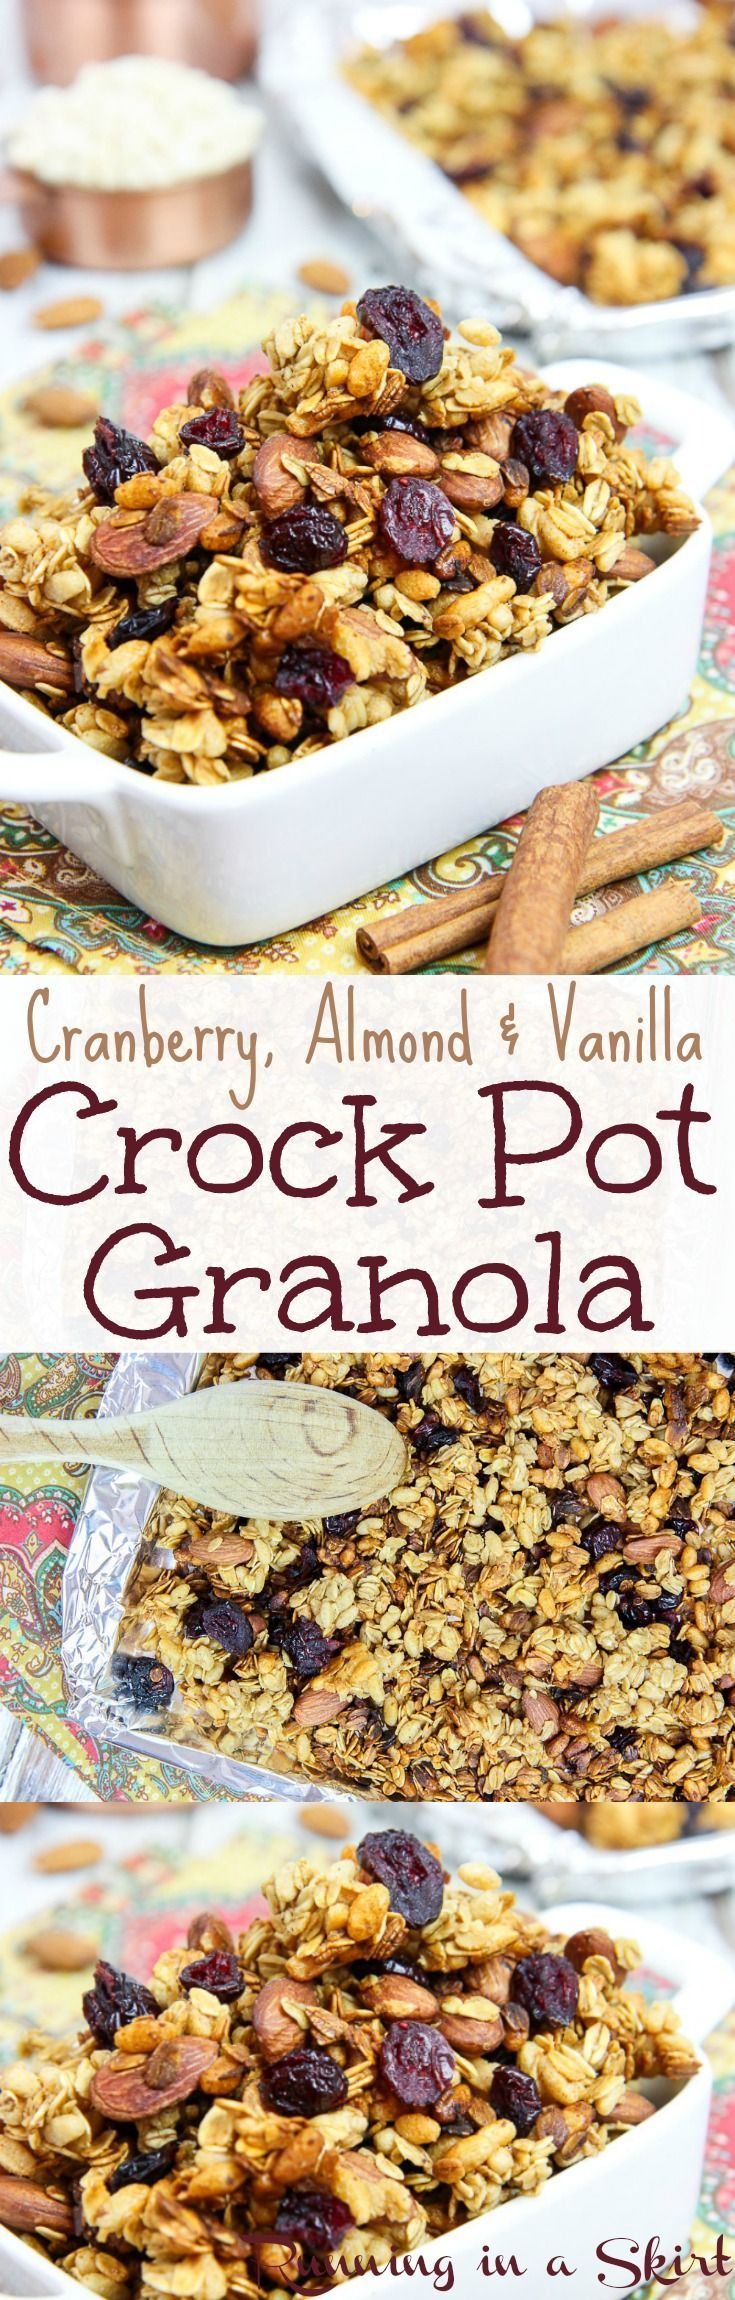 Healthy Cranberry, Almond & Vanilla Crock Pot Granola. Naturally sweetened with honey! Clean eating, simple and easy! A low calorie way to start your morning. Wake up to a sweet smelling treat in the slow cooker! / Running in a Skirt